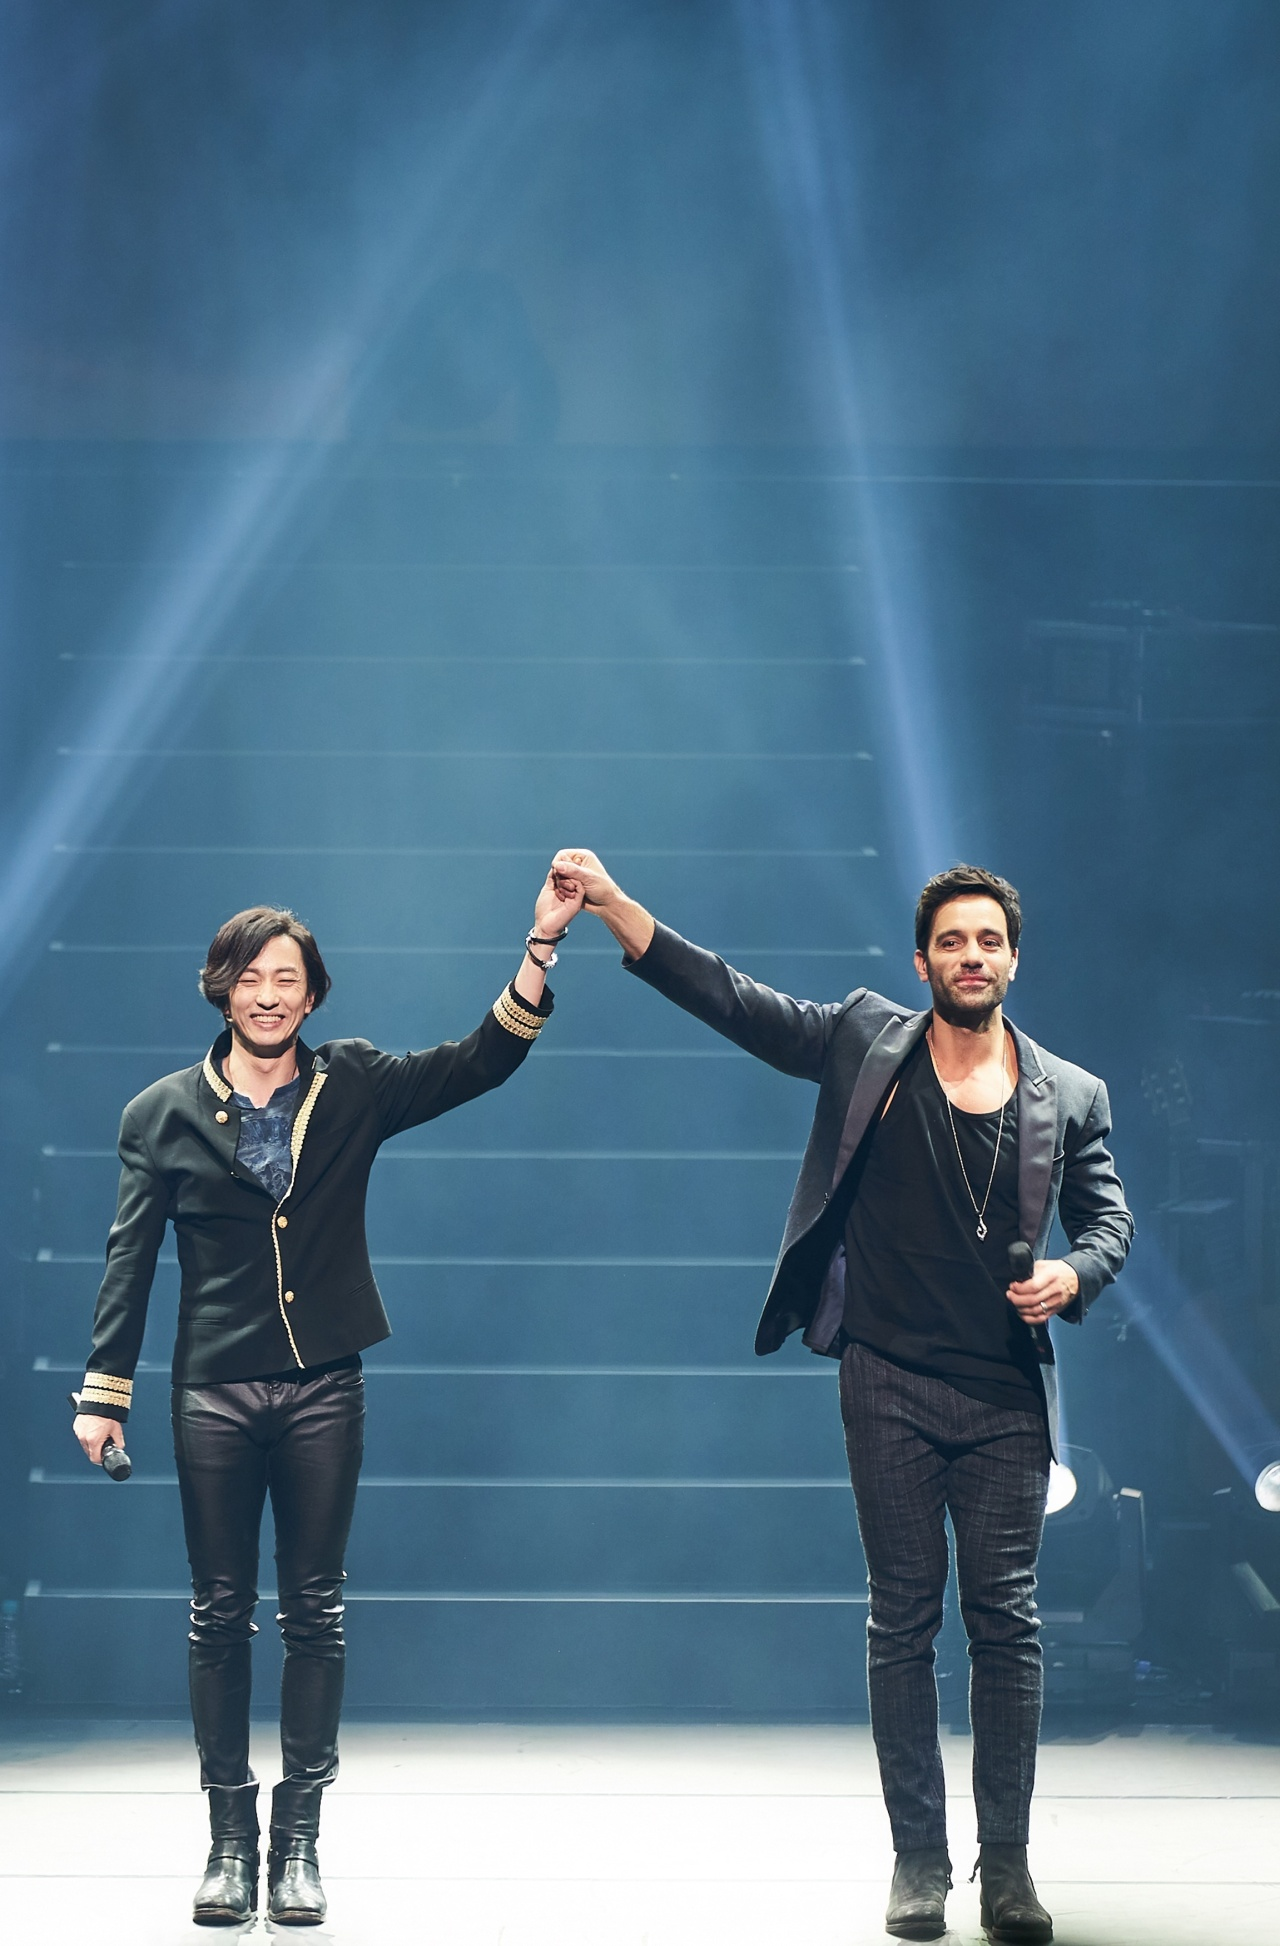 """Michael Lee (left) and Ramin Karimloo perform during a concert titled """"Music of the Night"""" at the Sejong Center for the Performing Arts in Seoul in 2019. (Clip Service)"""